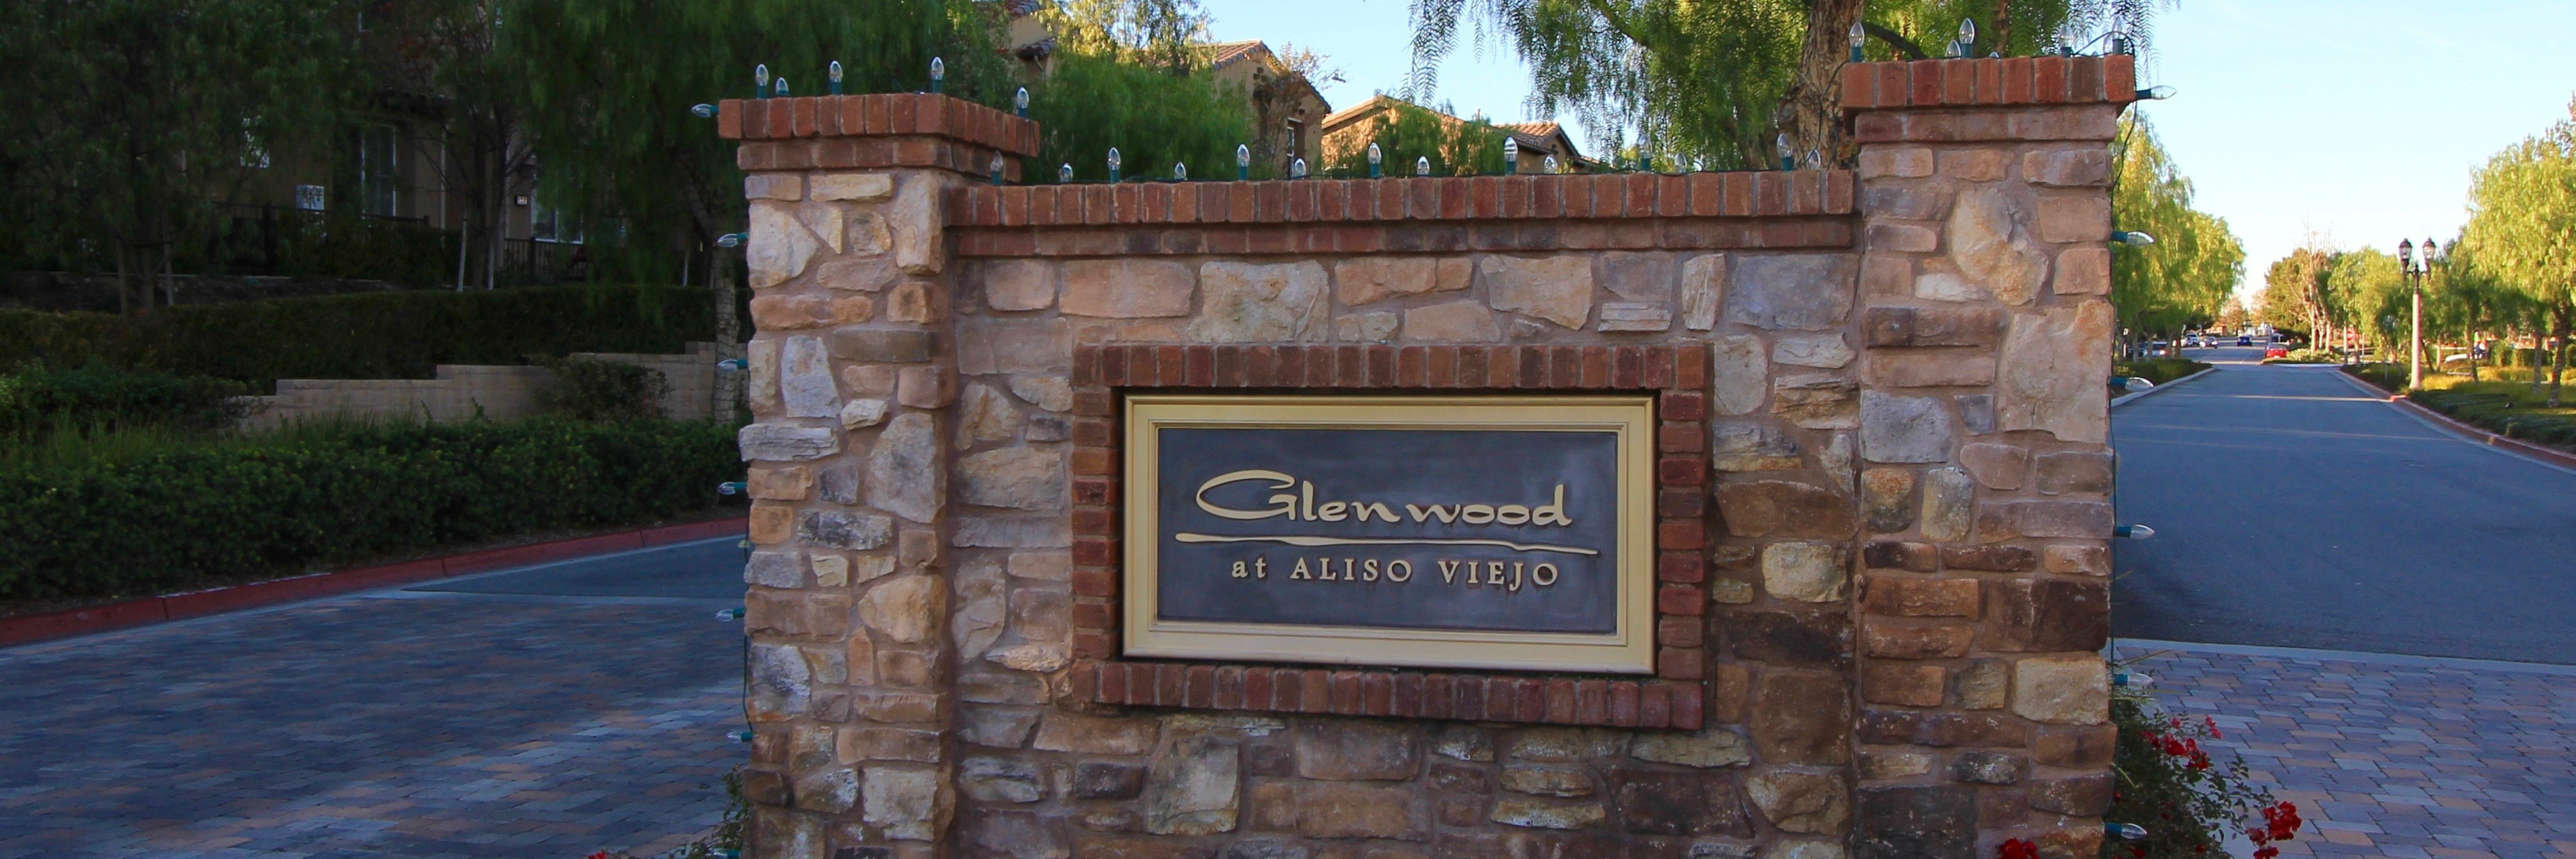 Glenwood Community Marquee in Aliso Viejo Ca